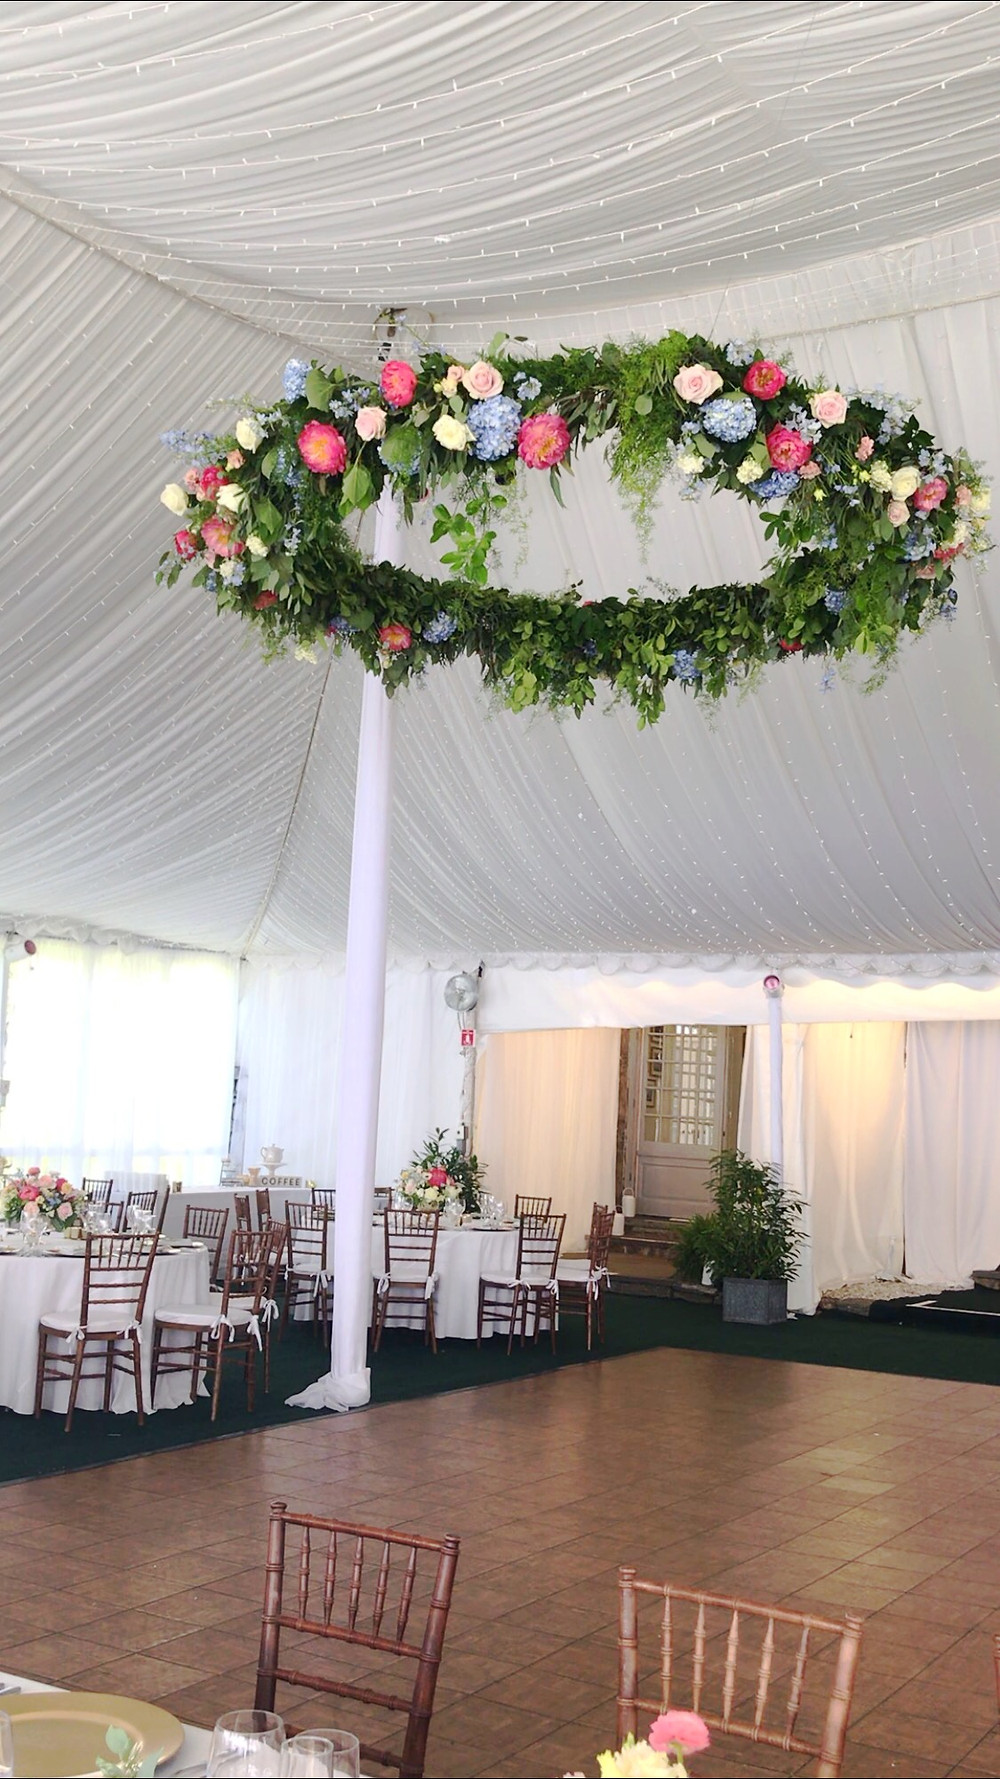 A ring floral hanging decor at The Wainwright House